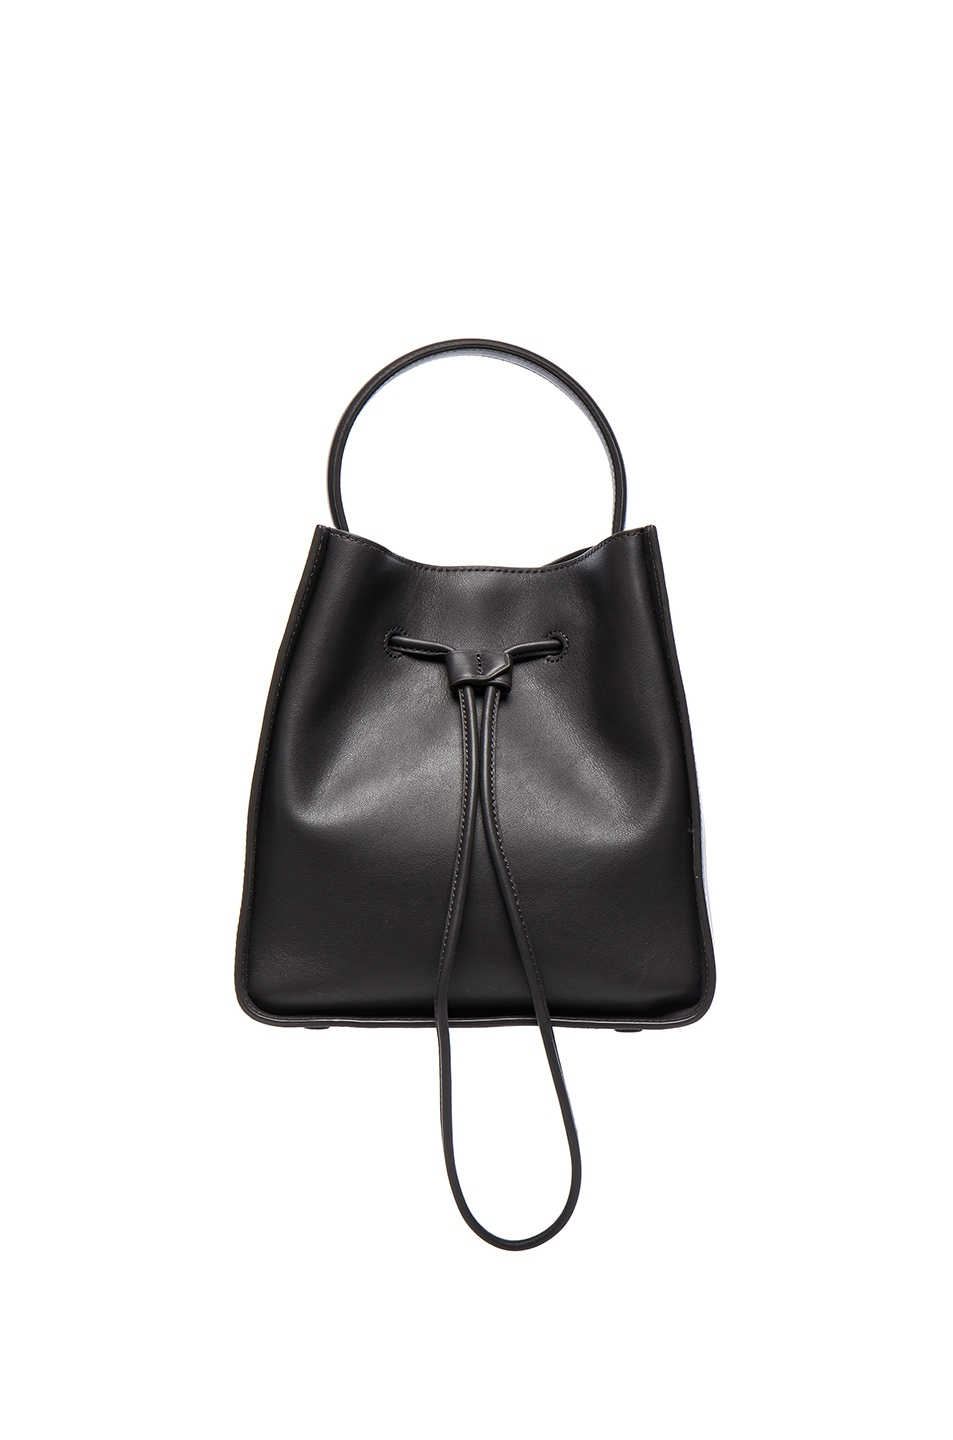 Image 1 of 3.1 phillip lim Soleil Small Bucket Bag in Charcoal